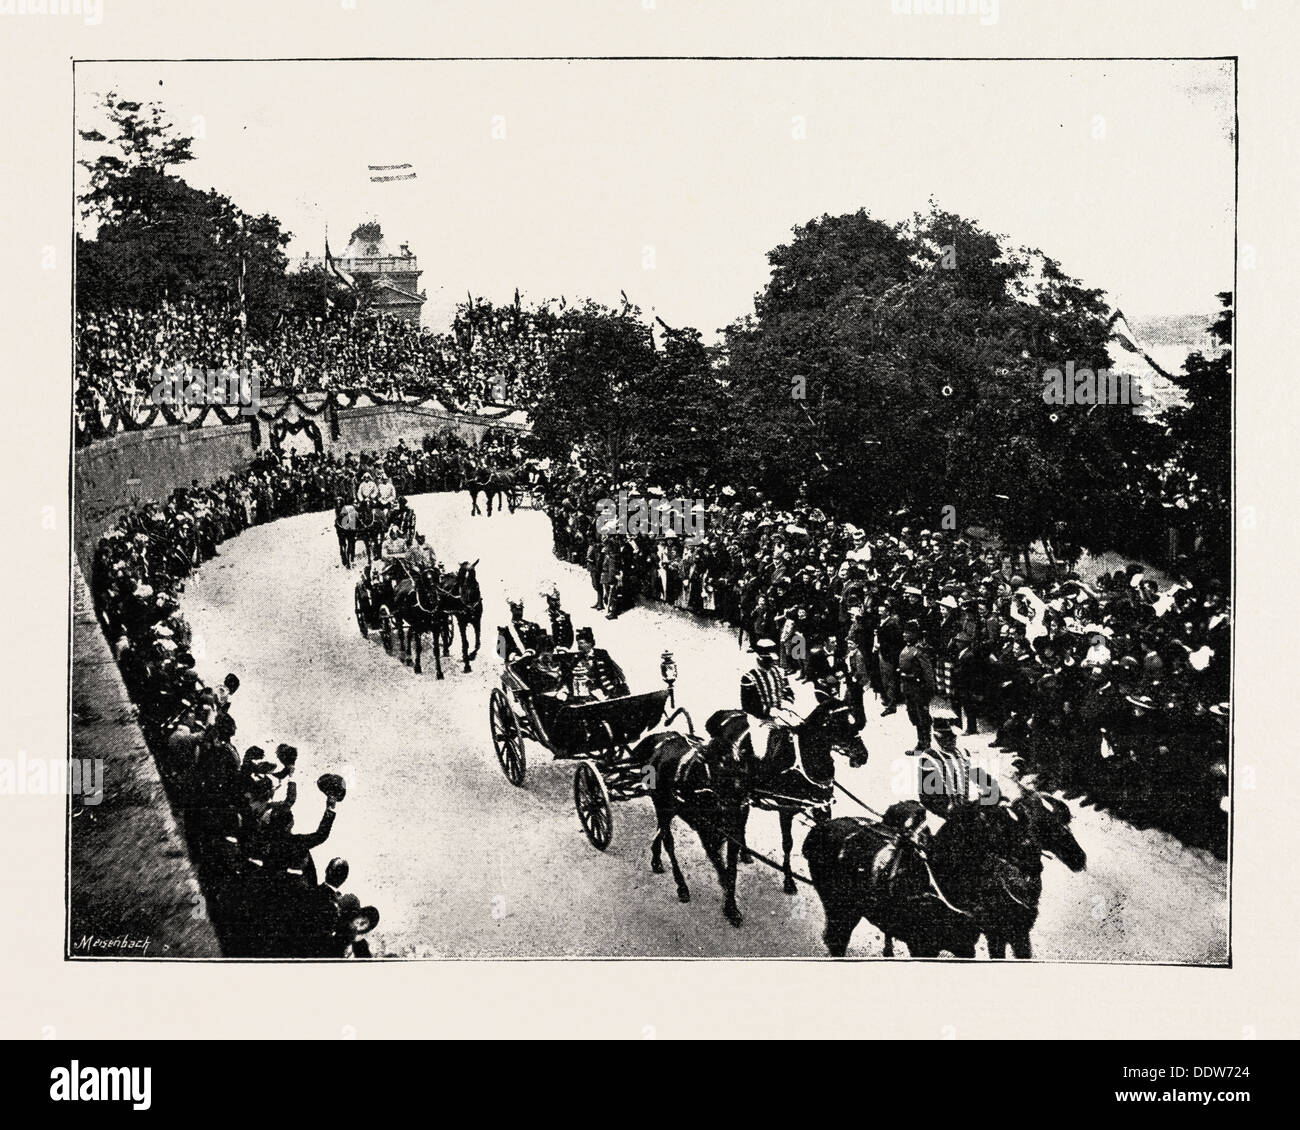 THE FESTIVITIES IN HUNGARY: HIS MAJESTY AND COUNT SZAPARY THE PRIME MINISTER, IN THE STATE COACH, ON THEIR WAY TO THE PALACE - Stock Image